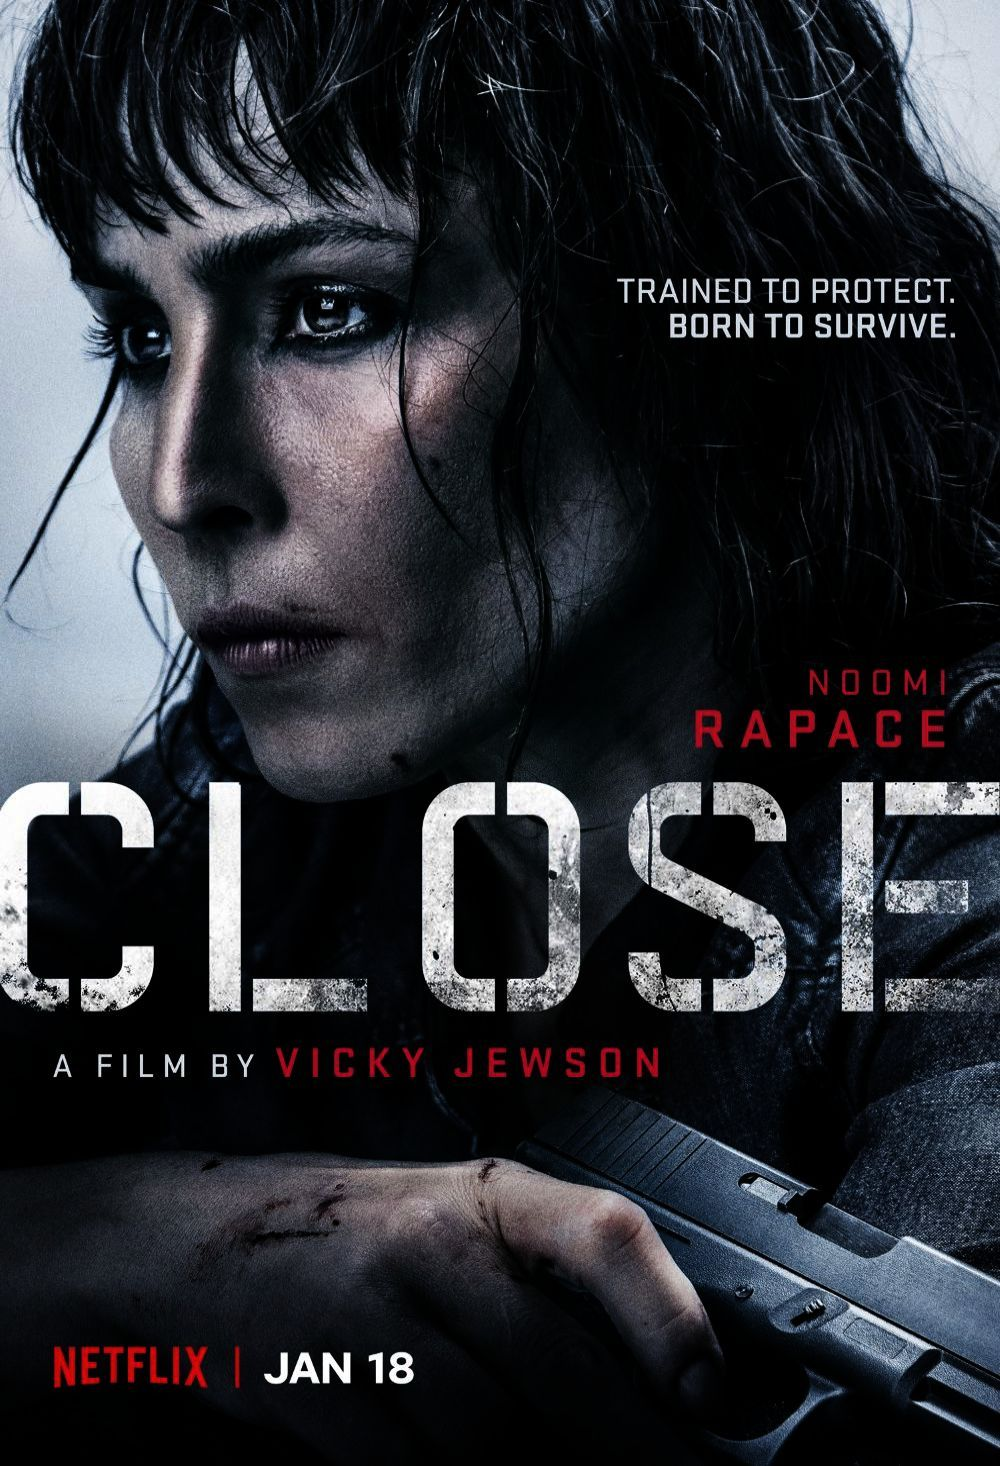 Movie Poster Frame Ideas Movie Posters Kijiji It Is Movie Poster Sizes Standard If Movie Poster Template Tumblr Closer Movie Noomi Rapace Indie Movie Posters